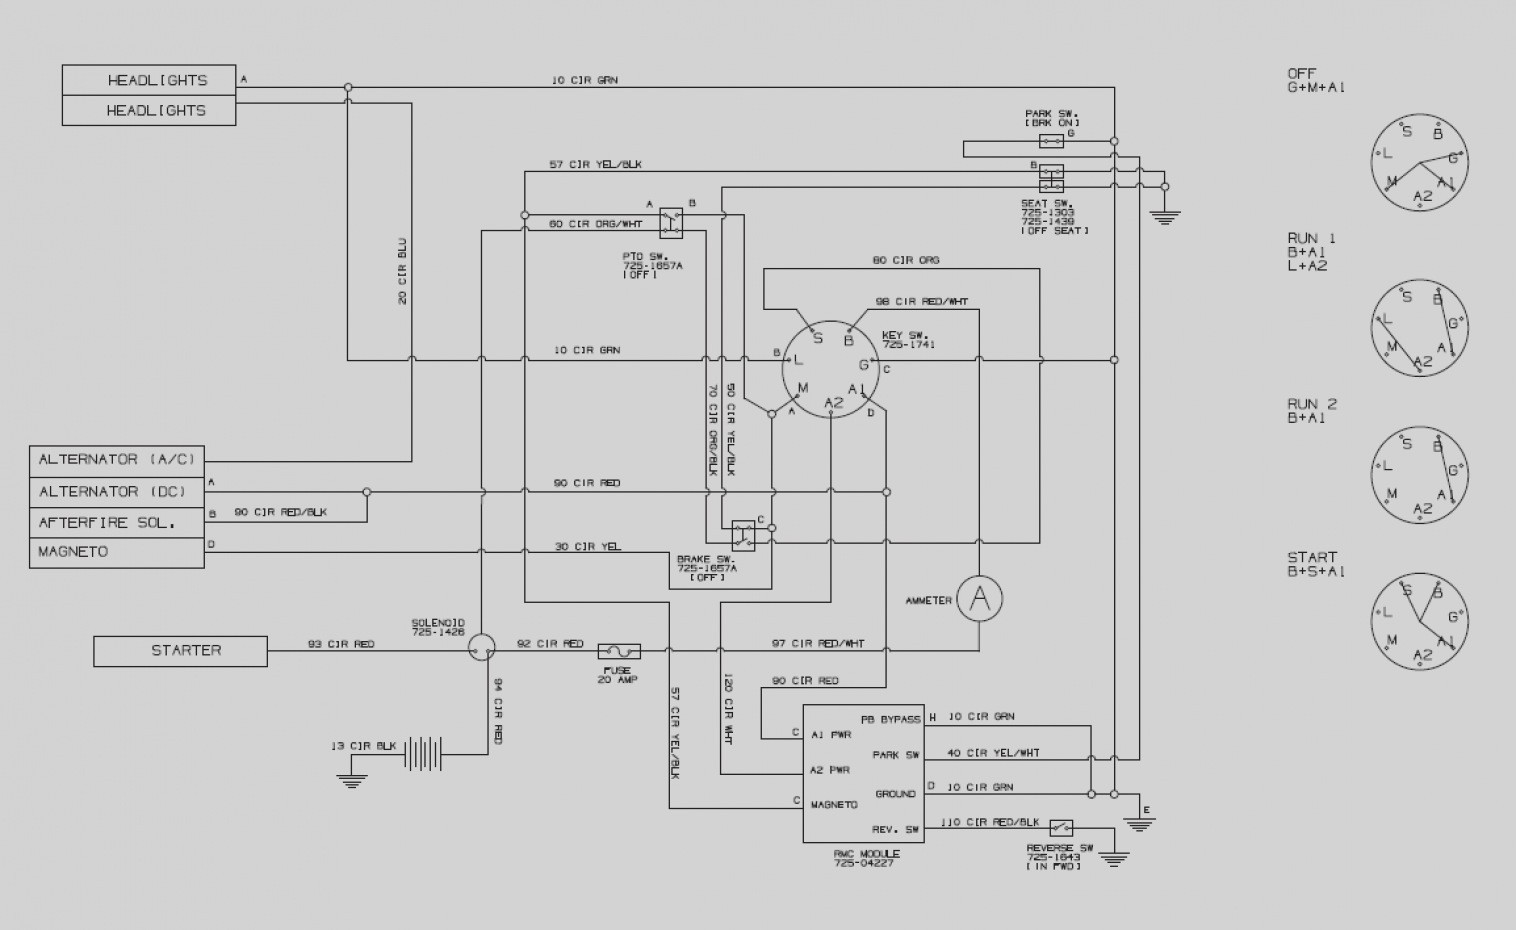 Troy Bilt Wiring Diagram - U Verse Wiring Diagram Of Connections for Wiring  Diagram Schematics | White Lawn Tractor Wiring Diagram |  | Wiring Diagram Schematics